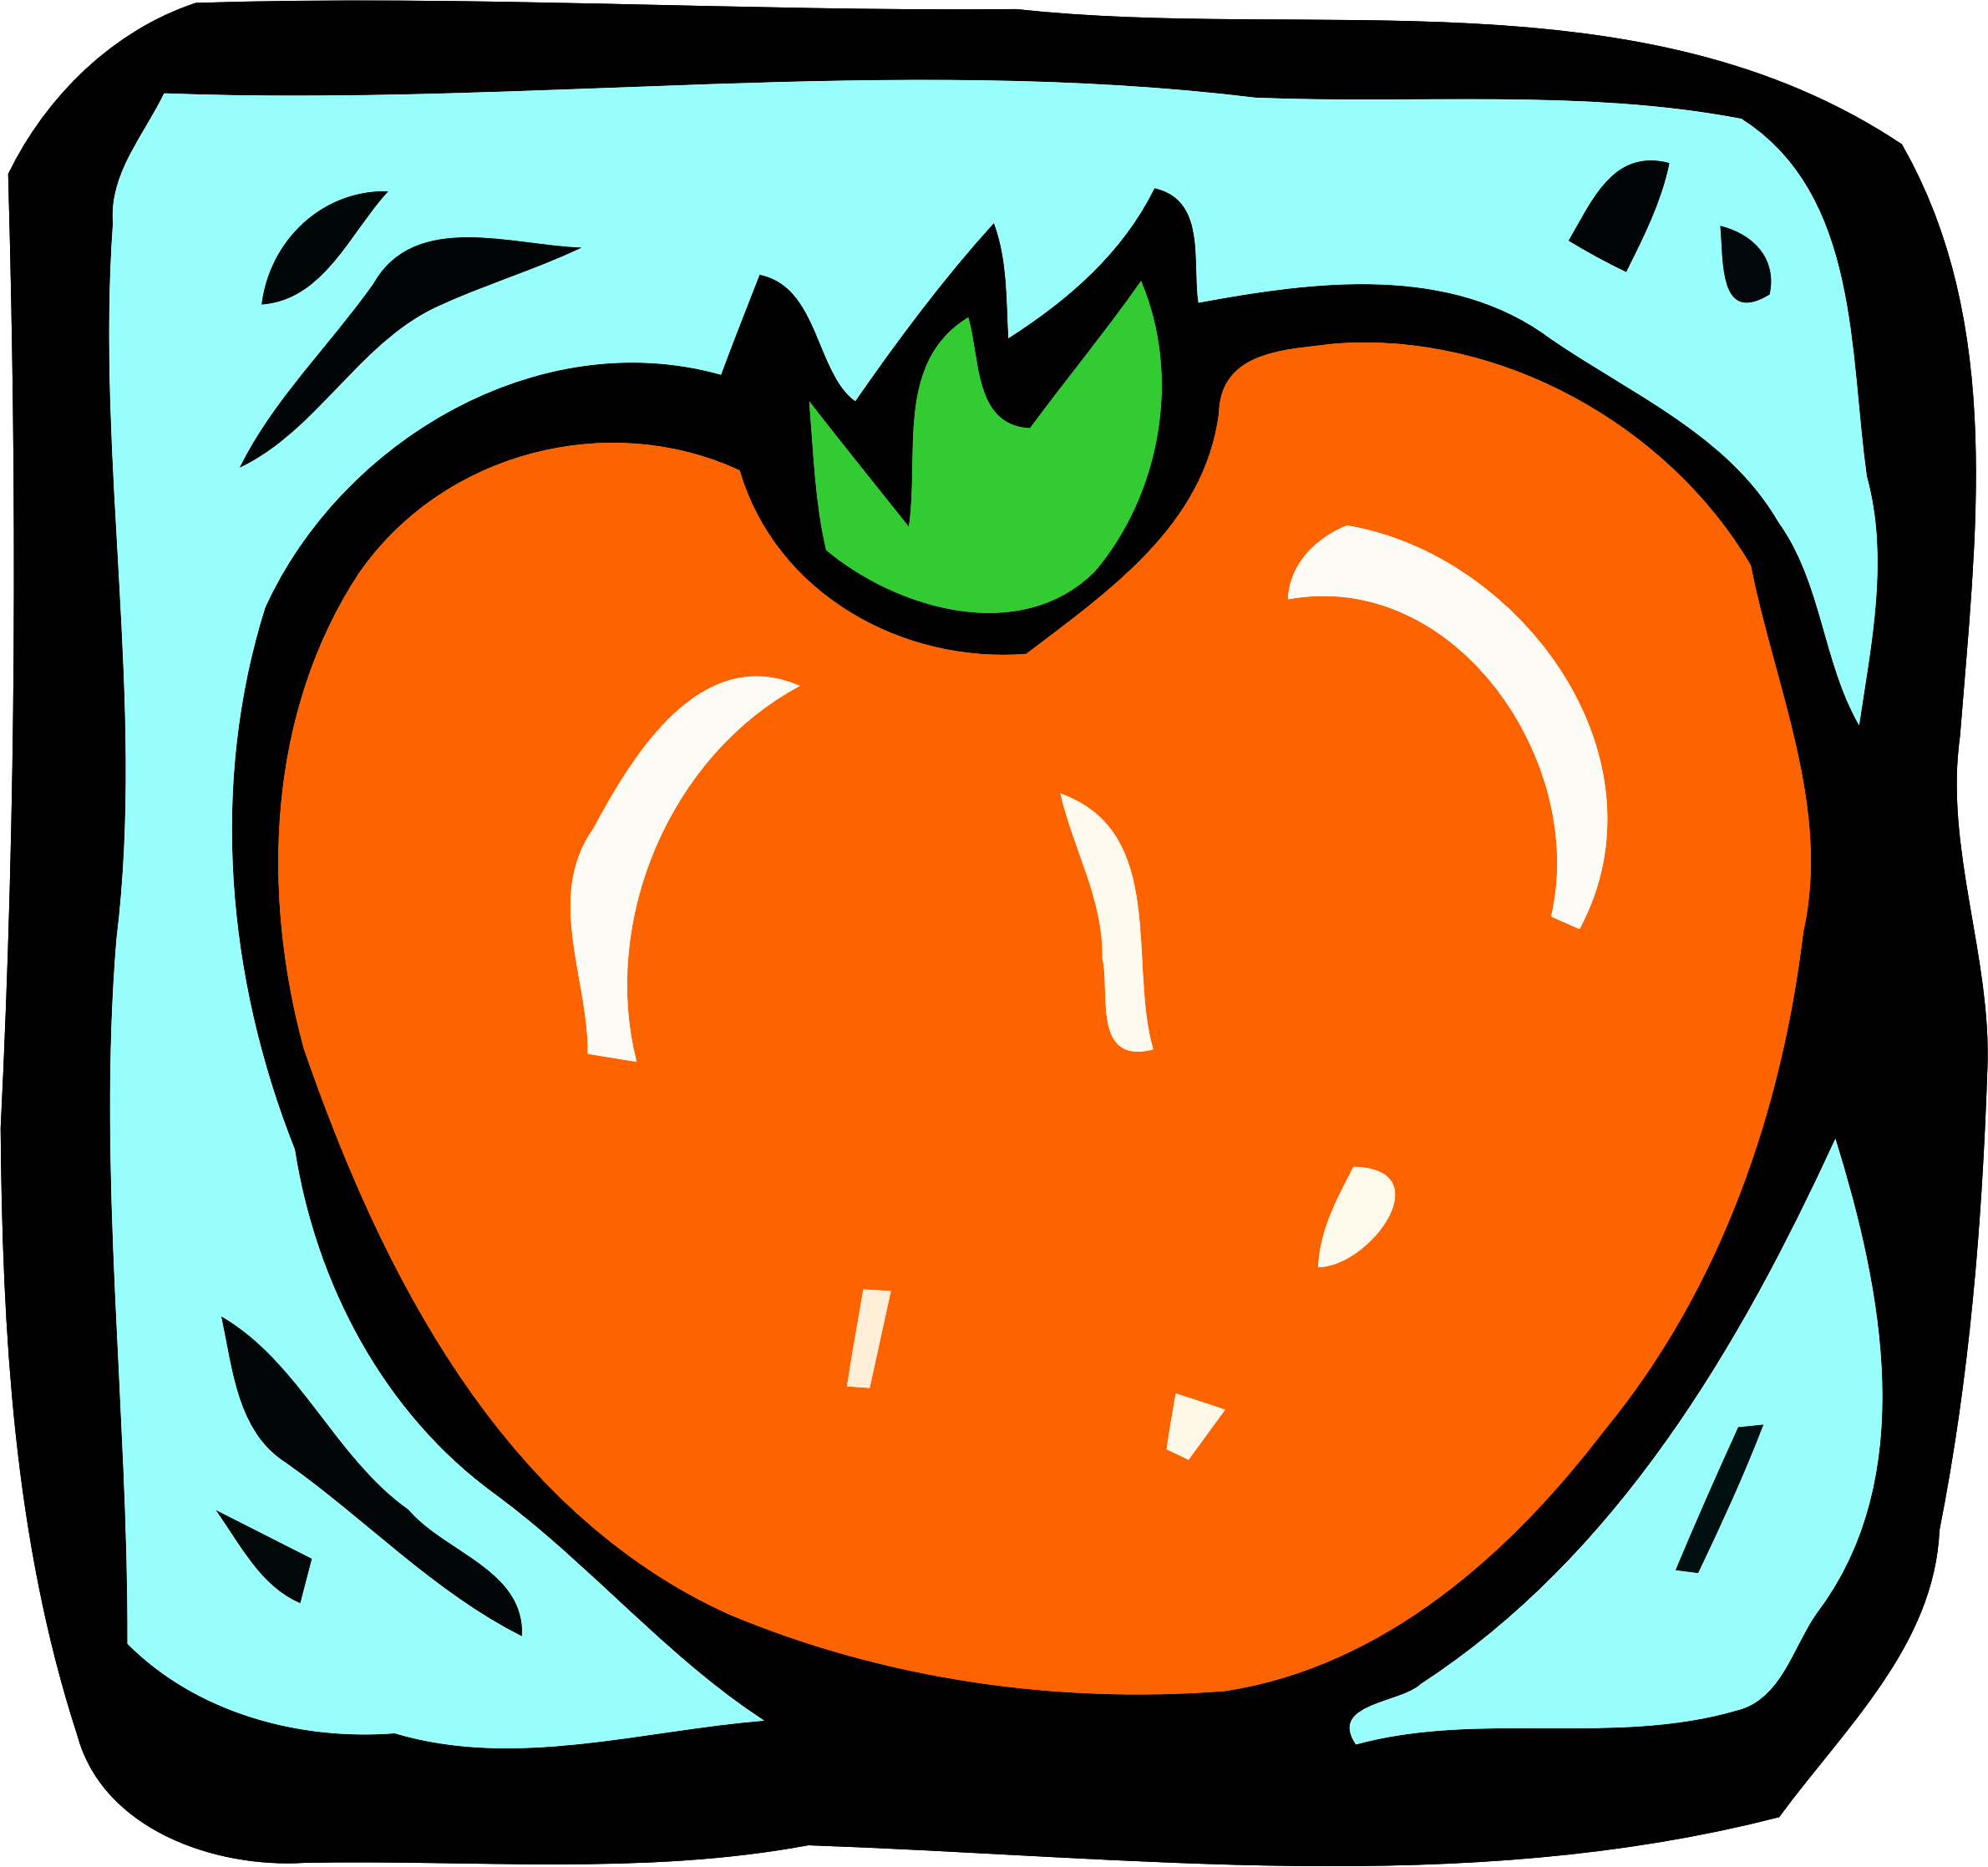 Food and drink icon - persimmon by Firkin